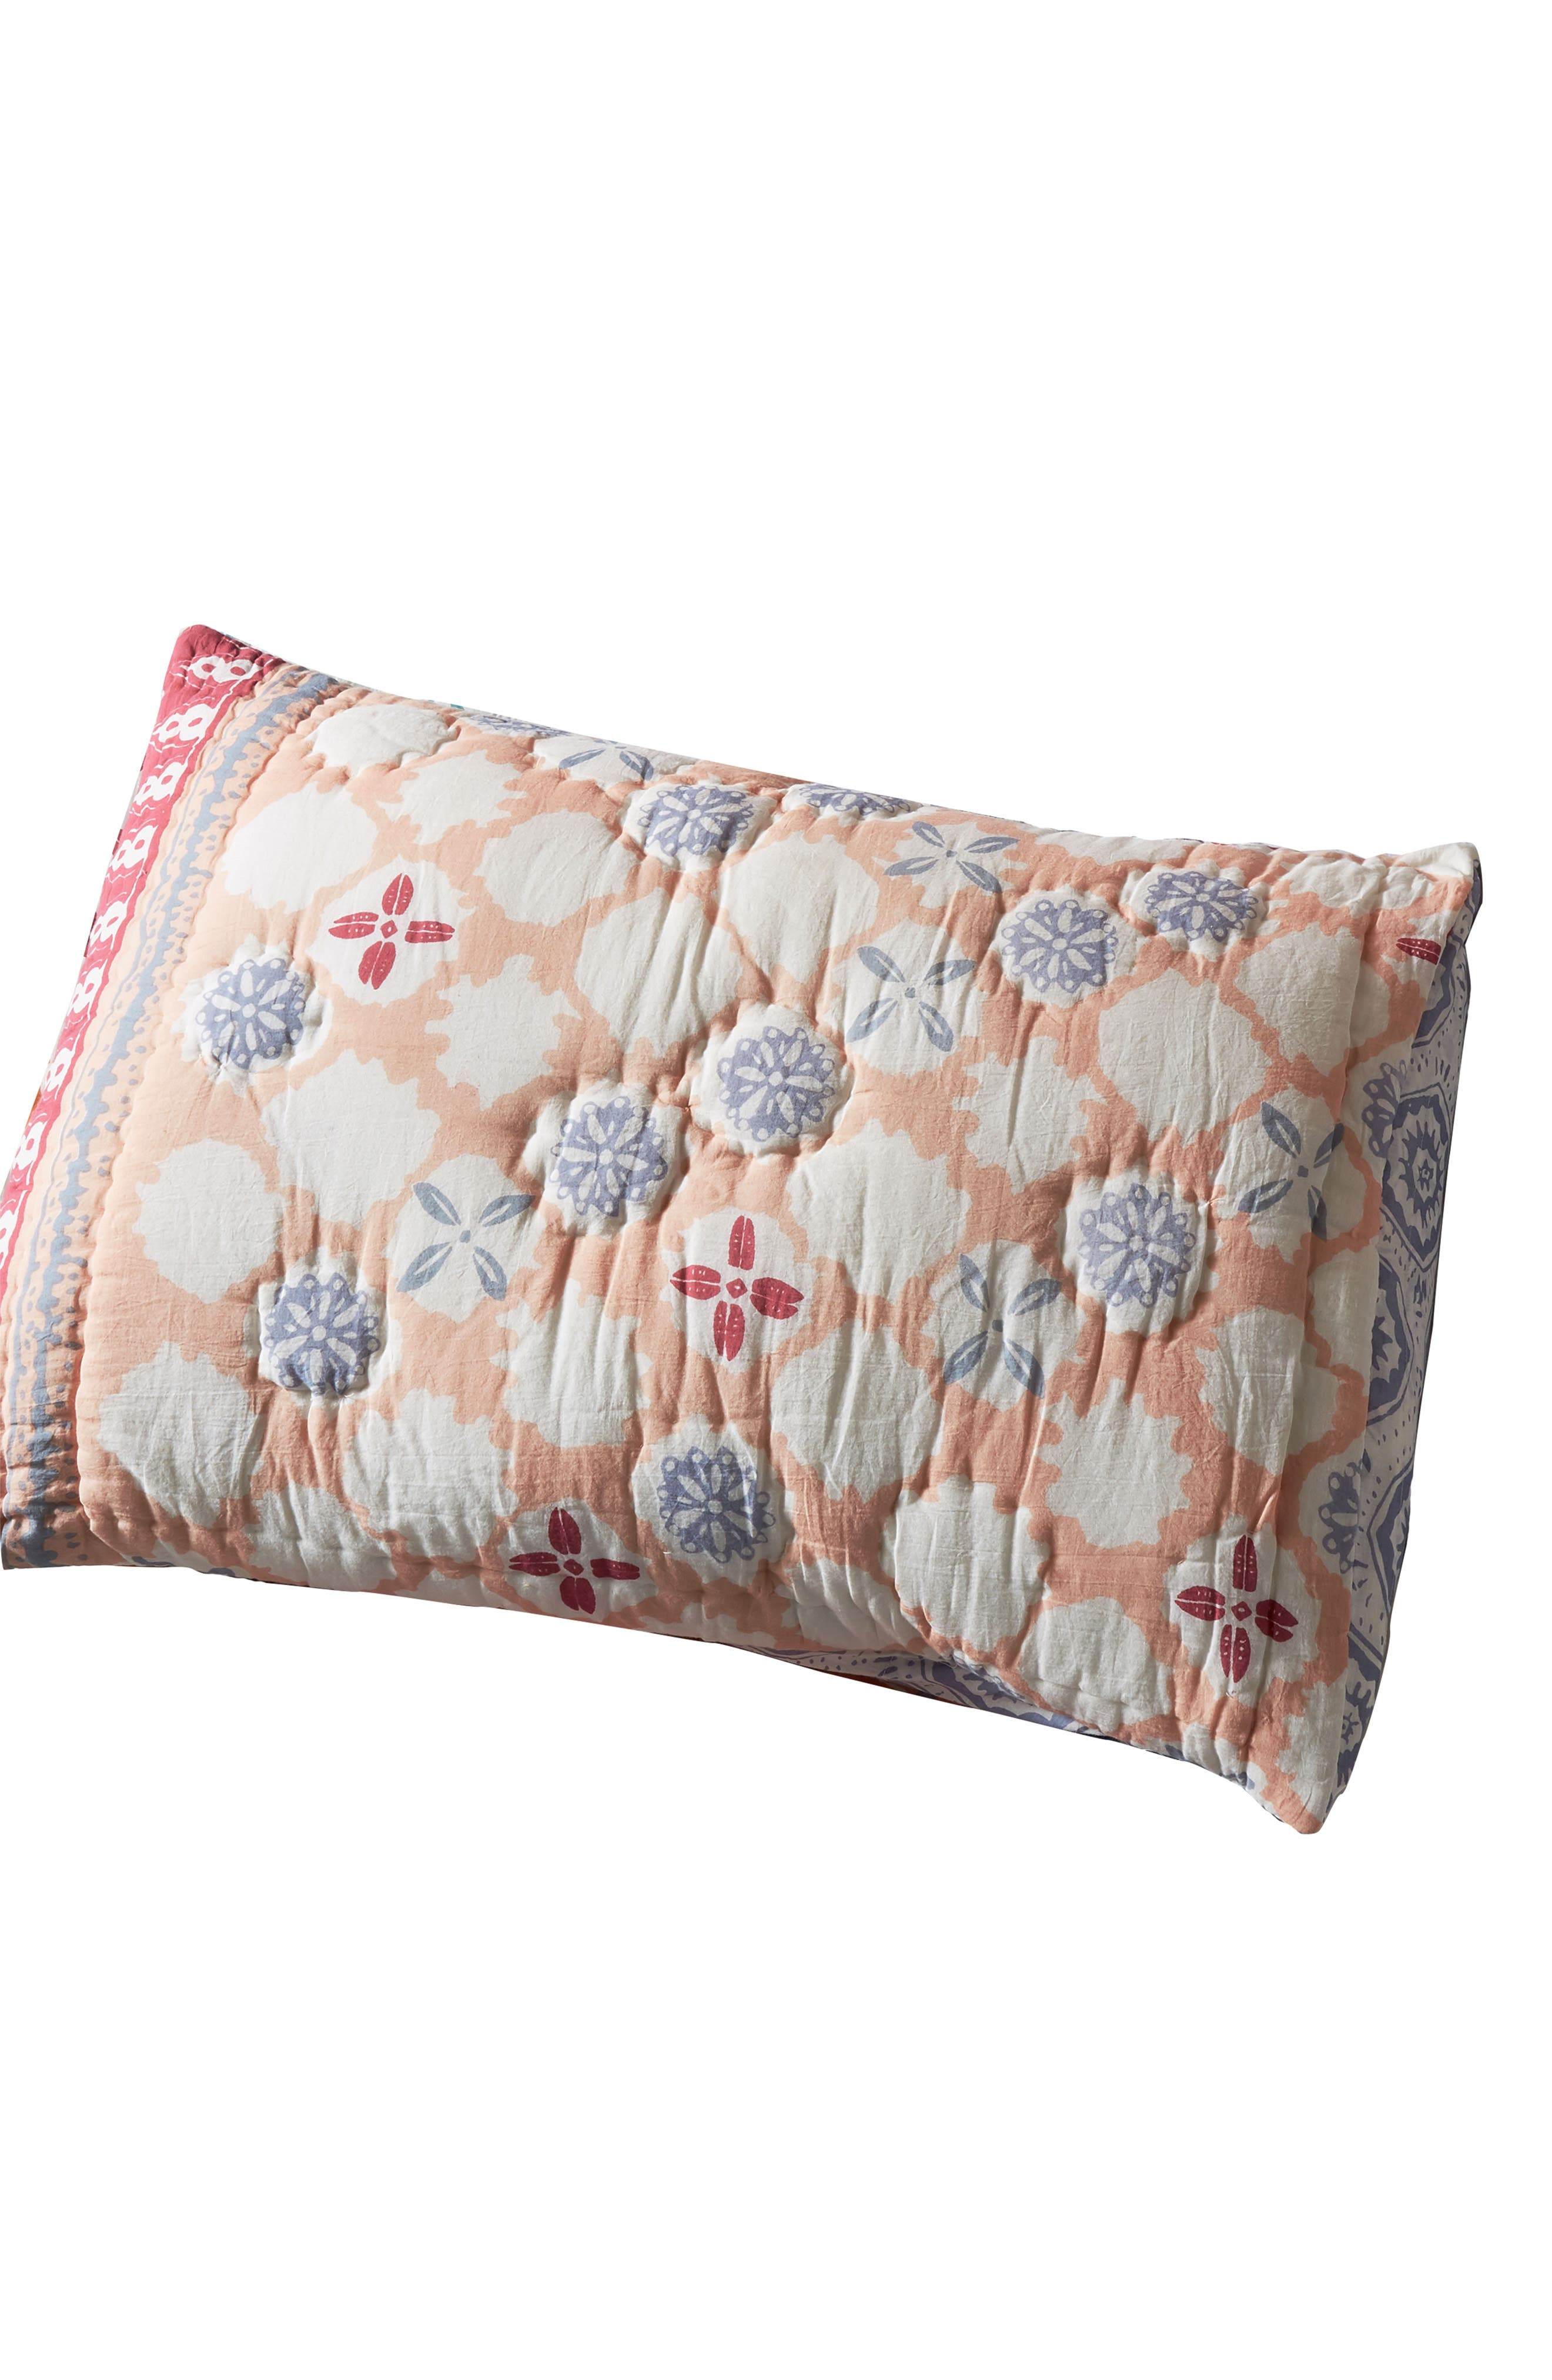 anthropologie laterza pillow shams, size king - blue